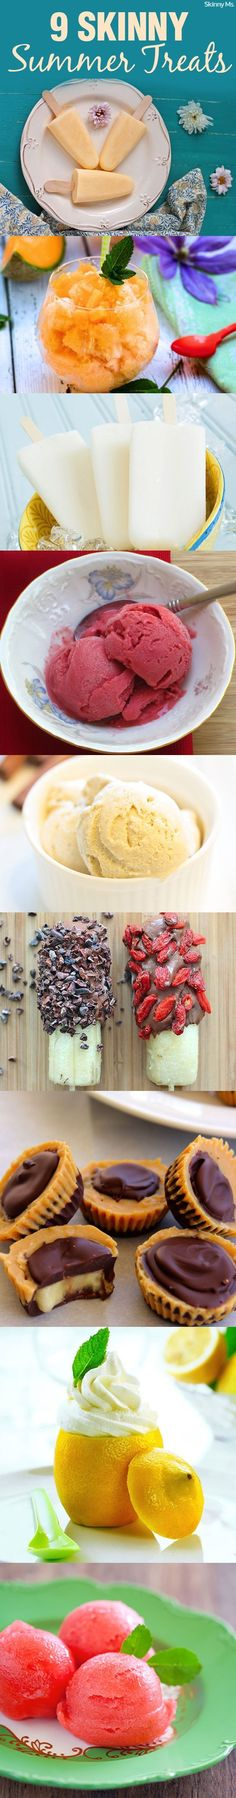 9 Skinny Summer Treats! The Peanut Butter Banana Cups, Watermelon Sorbet and Pina Colada Pops are a few of my favorites!! No artificial flavors and superfluous calories.